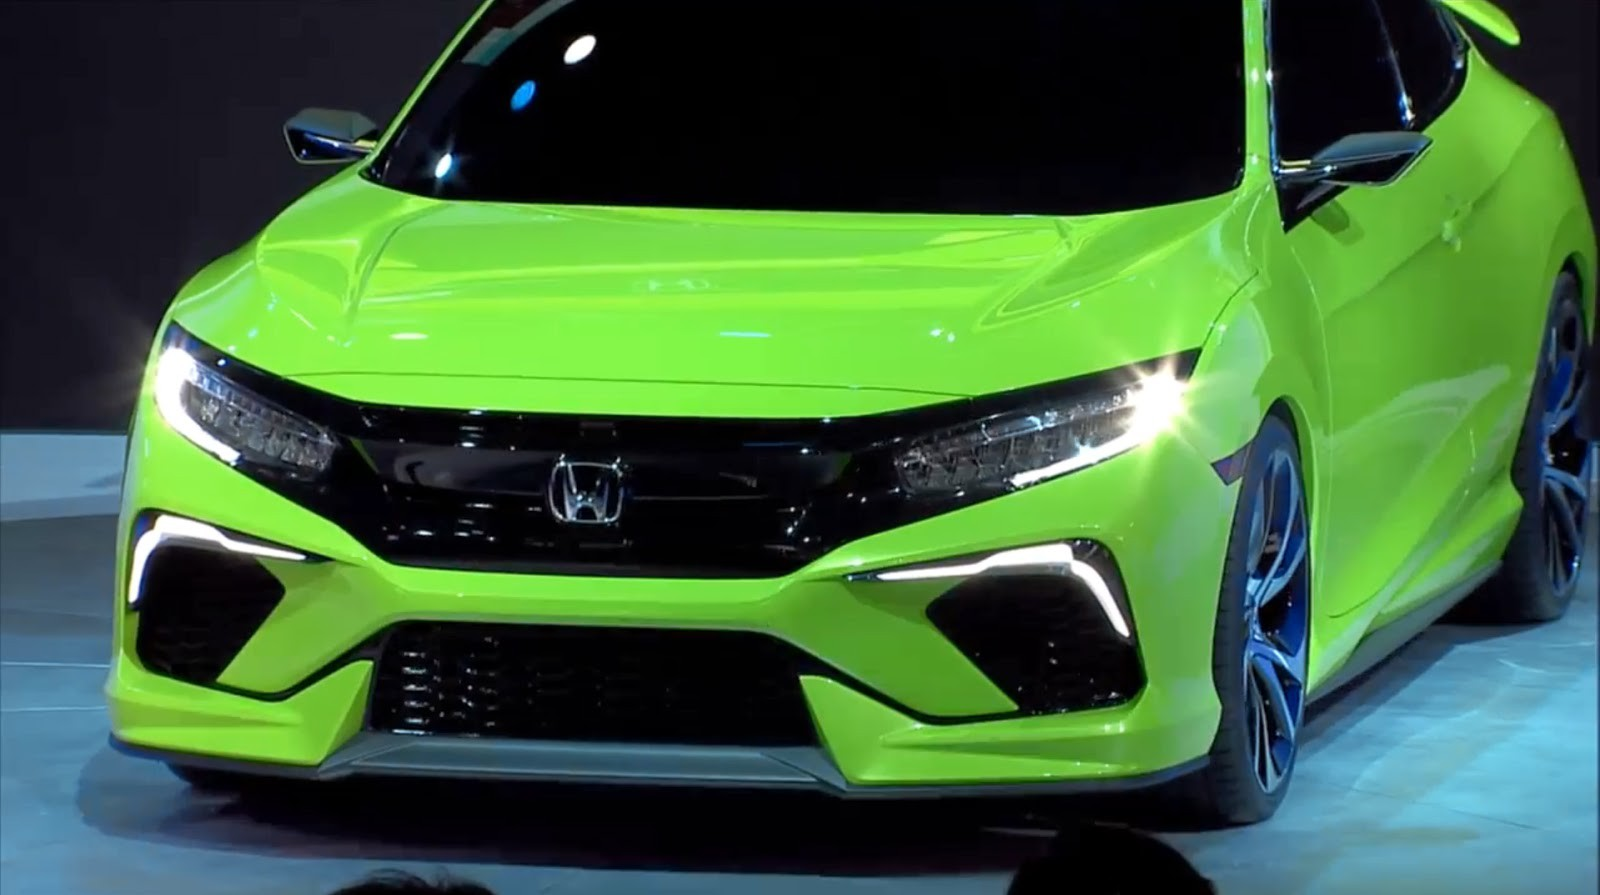 Honda показала концепт нового Civic Civic, honda, авто, концепт